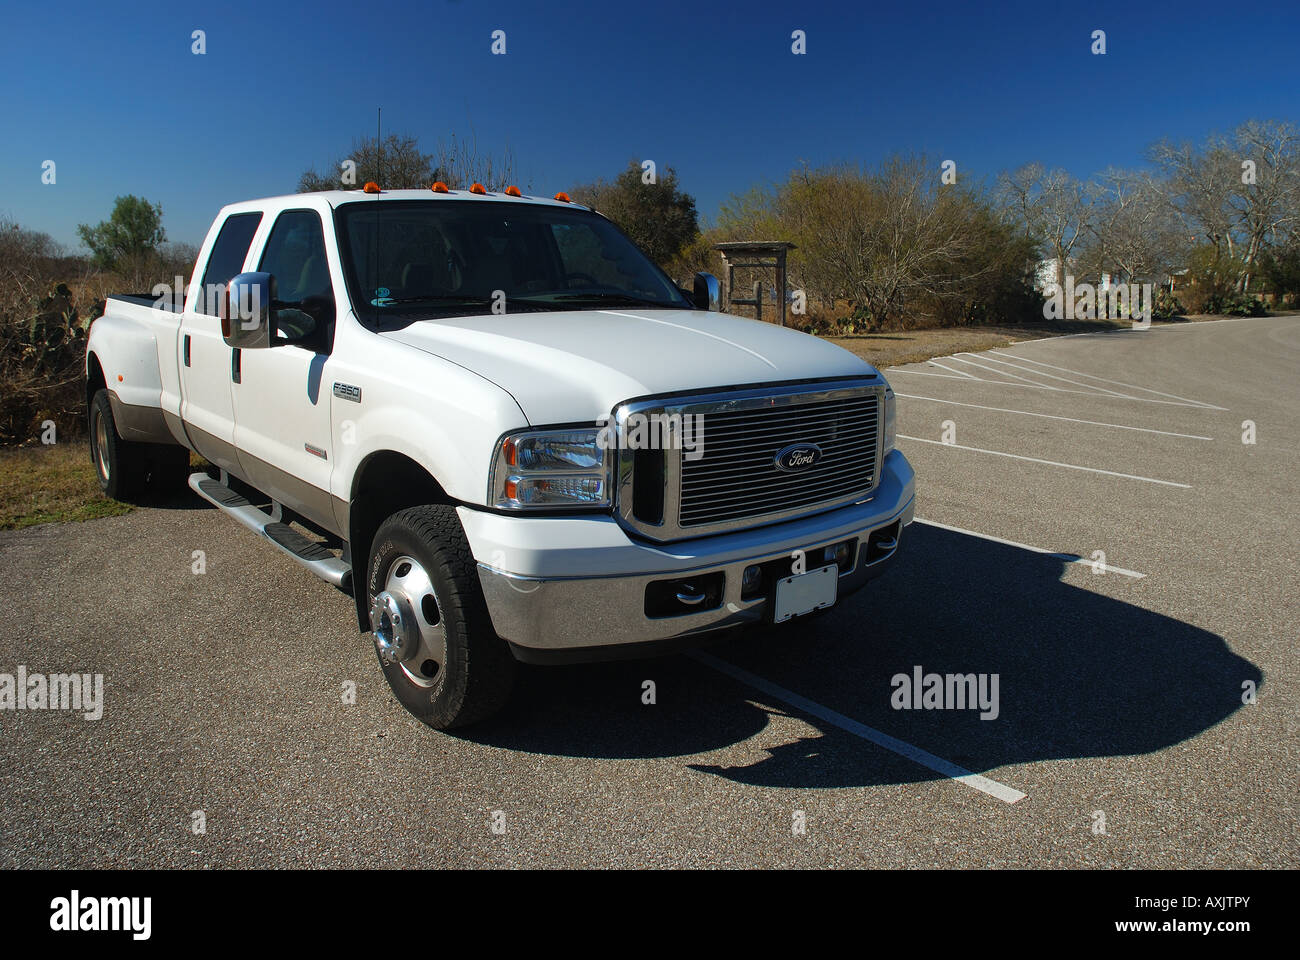 Big American Pickup Truck Stock Photo 16861202 Alamy